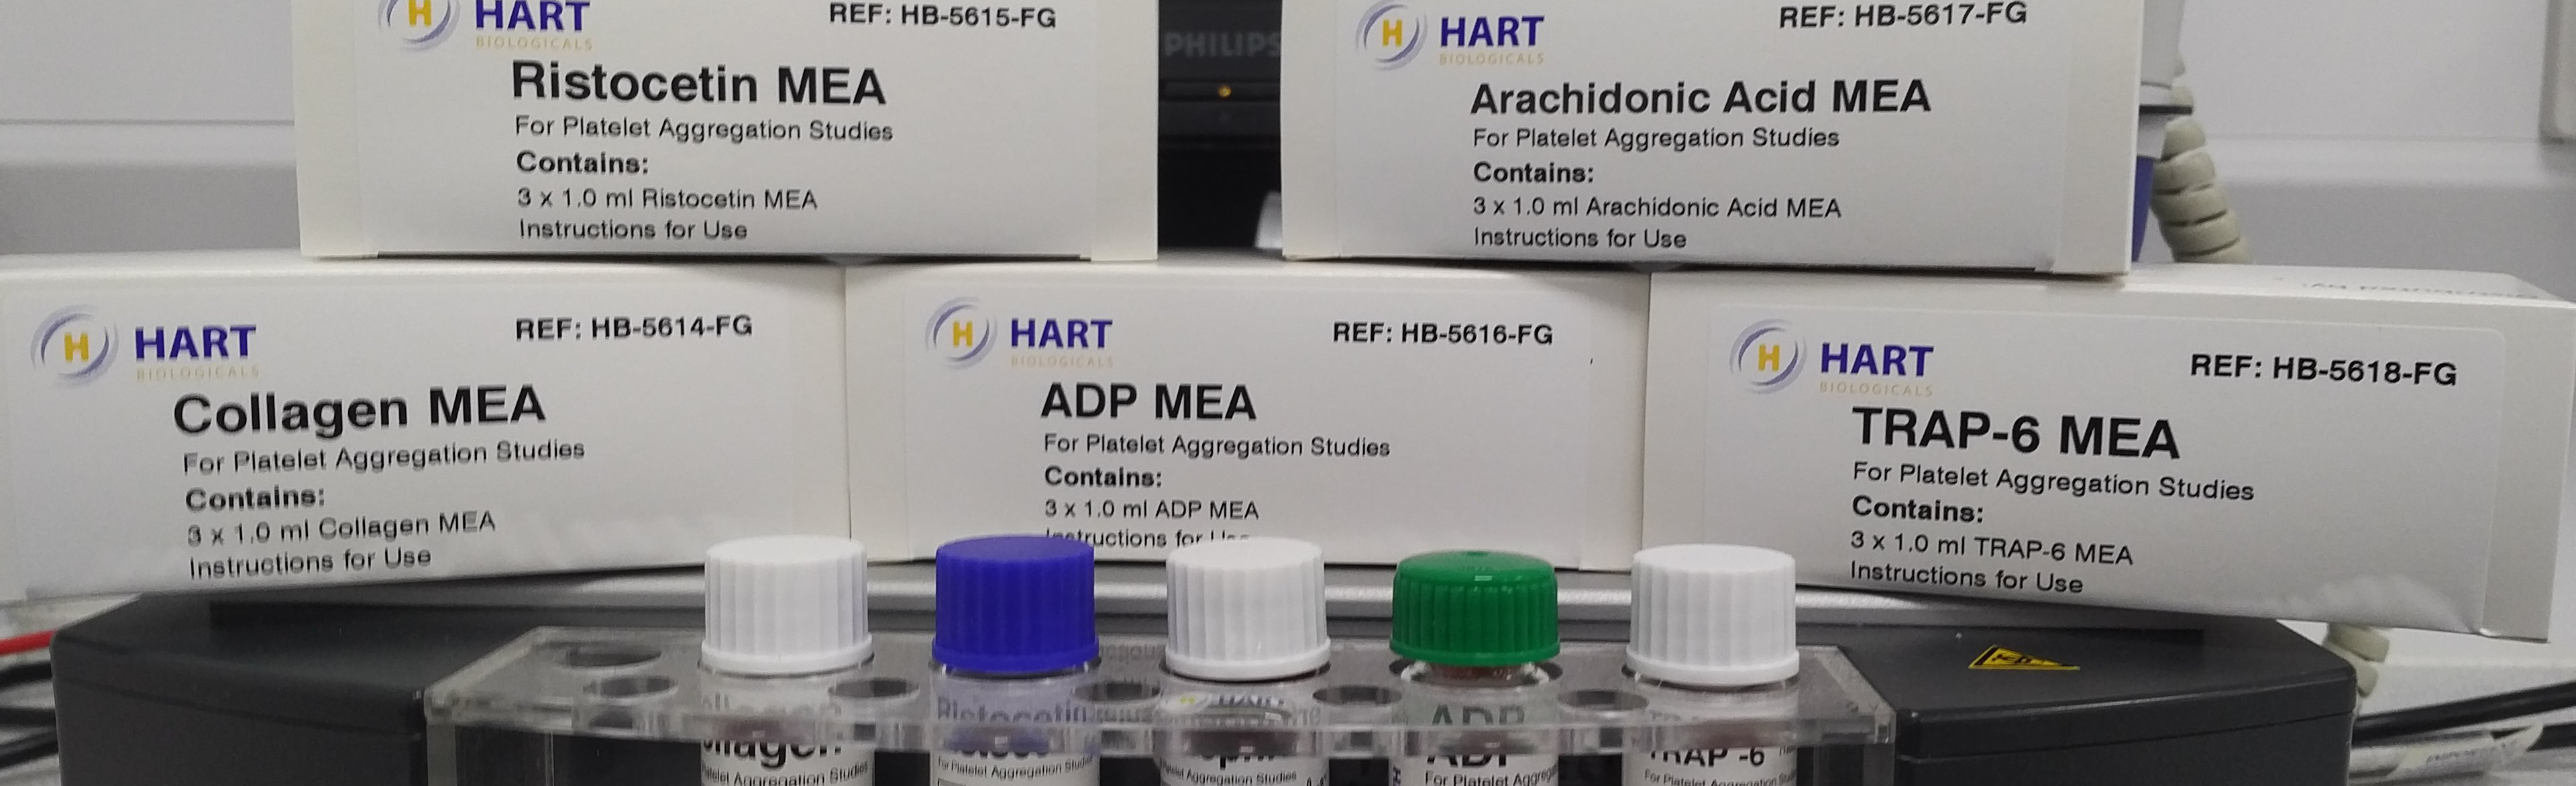 Meet the family of new MEA platelet aggregation reagents from Hart Bio Image